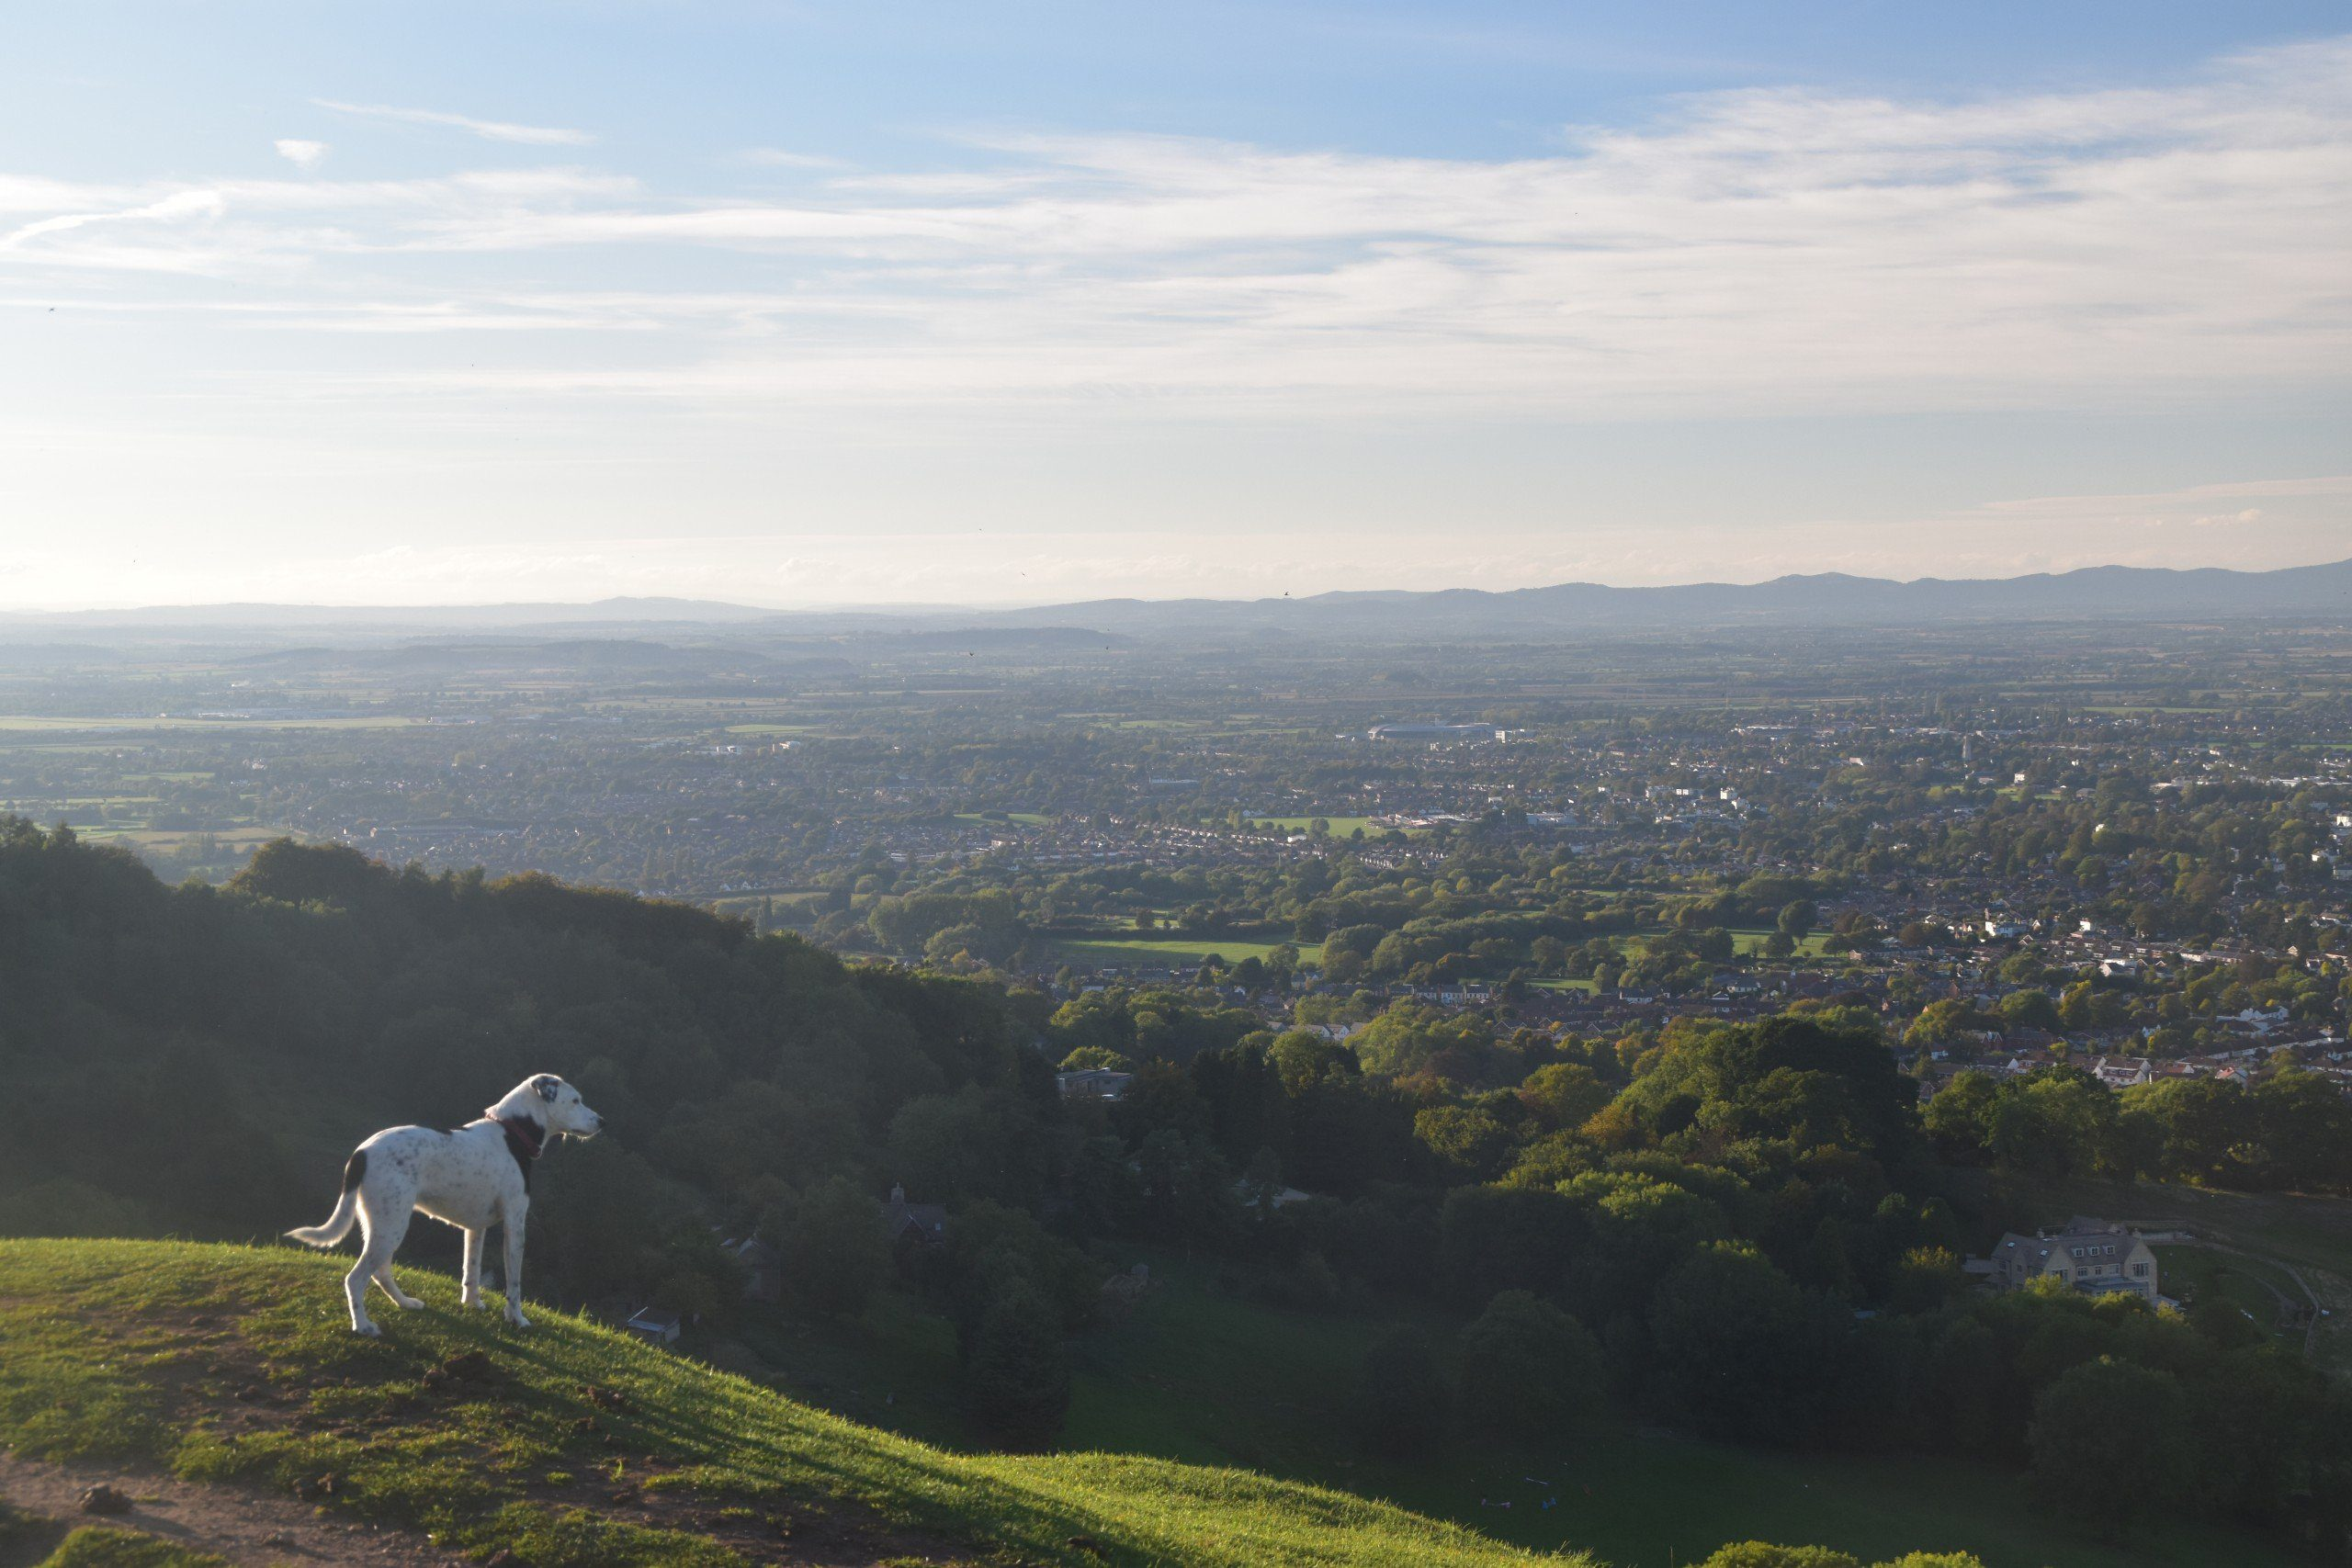 Th Cotswold Way: View of Cheltenham from Hartley Hill